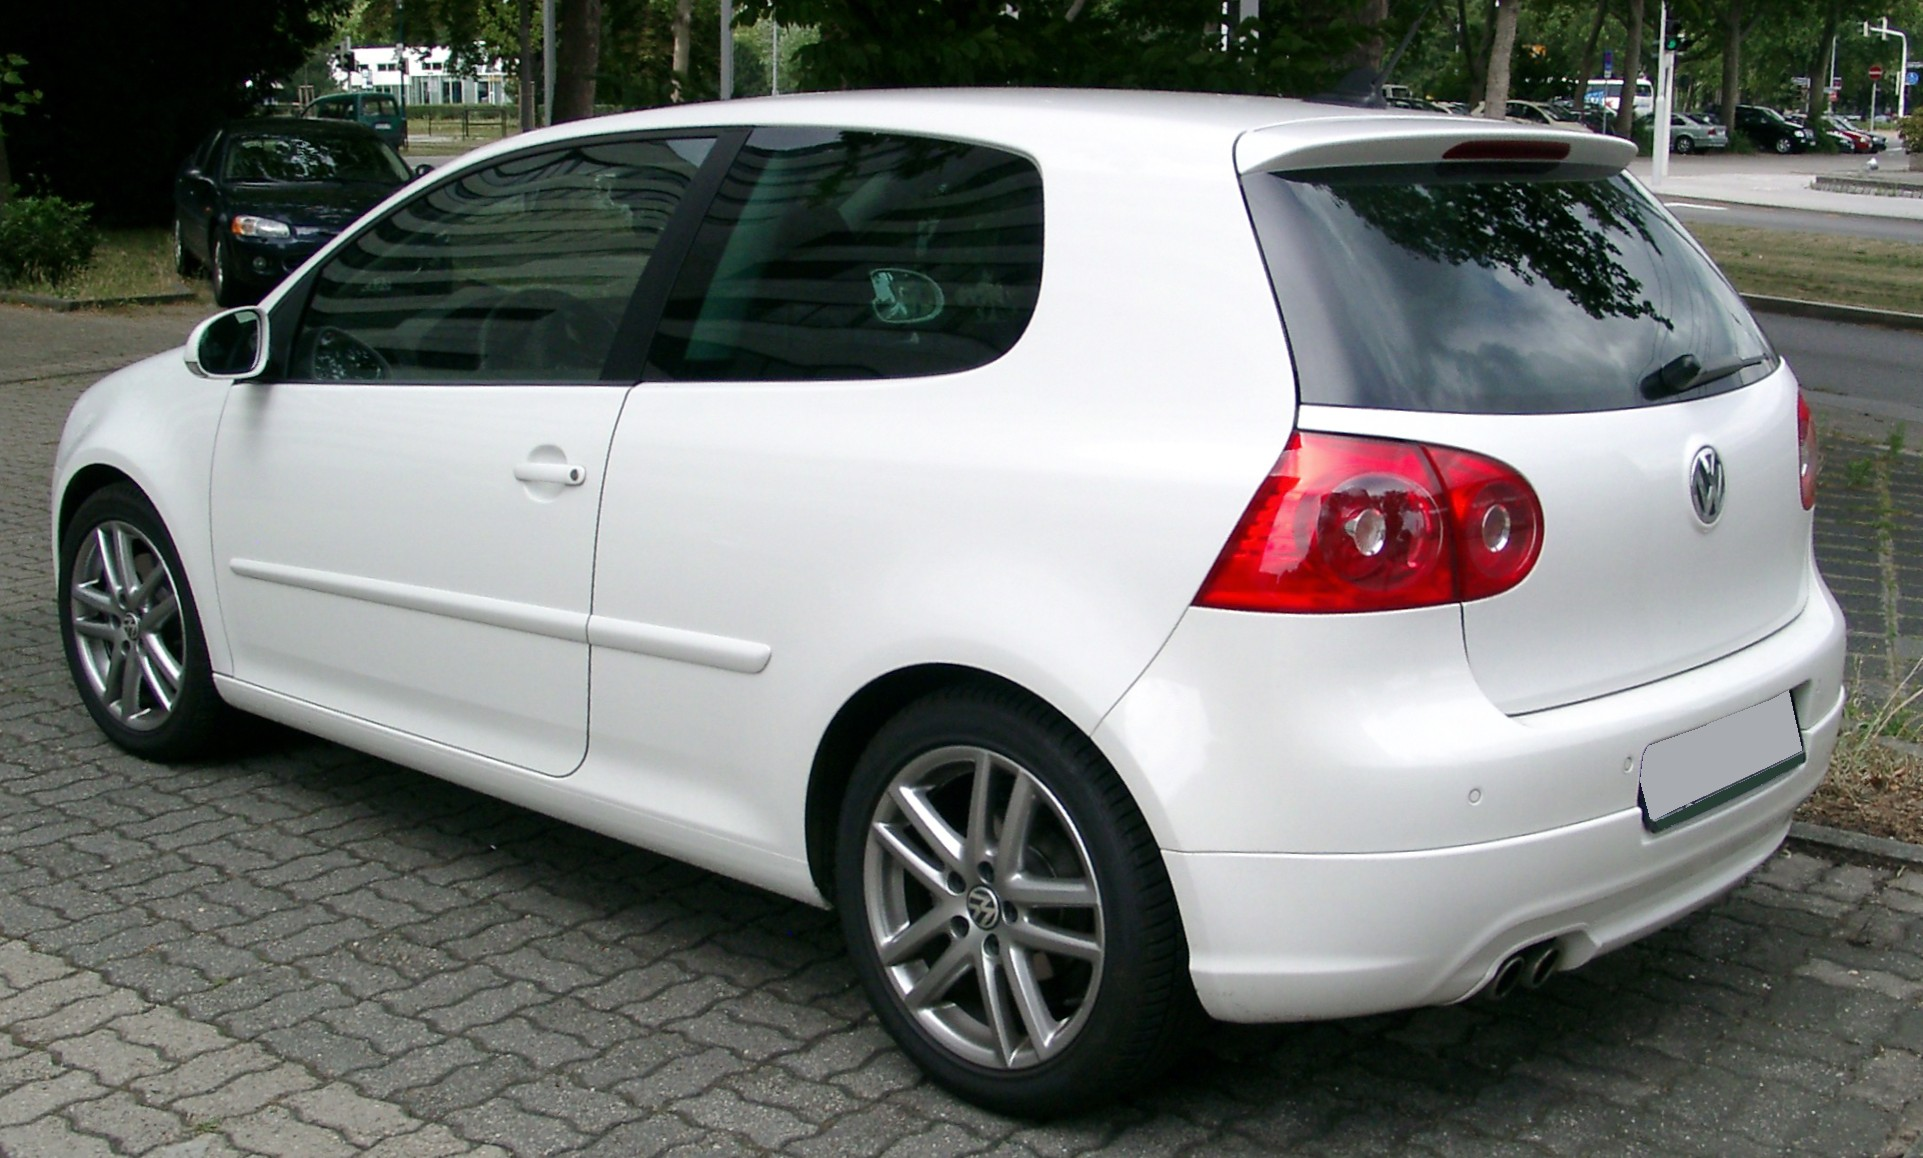 file vw golf v gt sport rear wikimedia commons. Black Bedroom Furniture Sets. Home Design Ideas